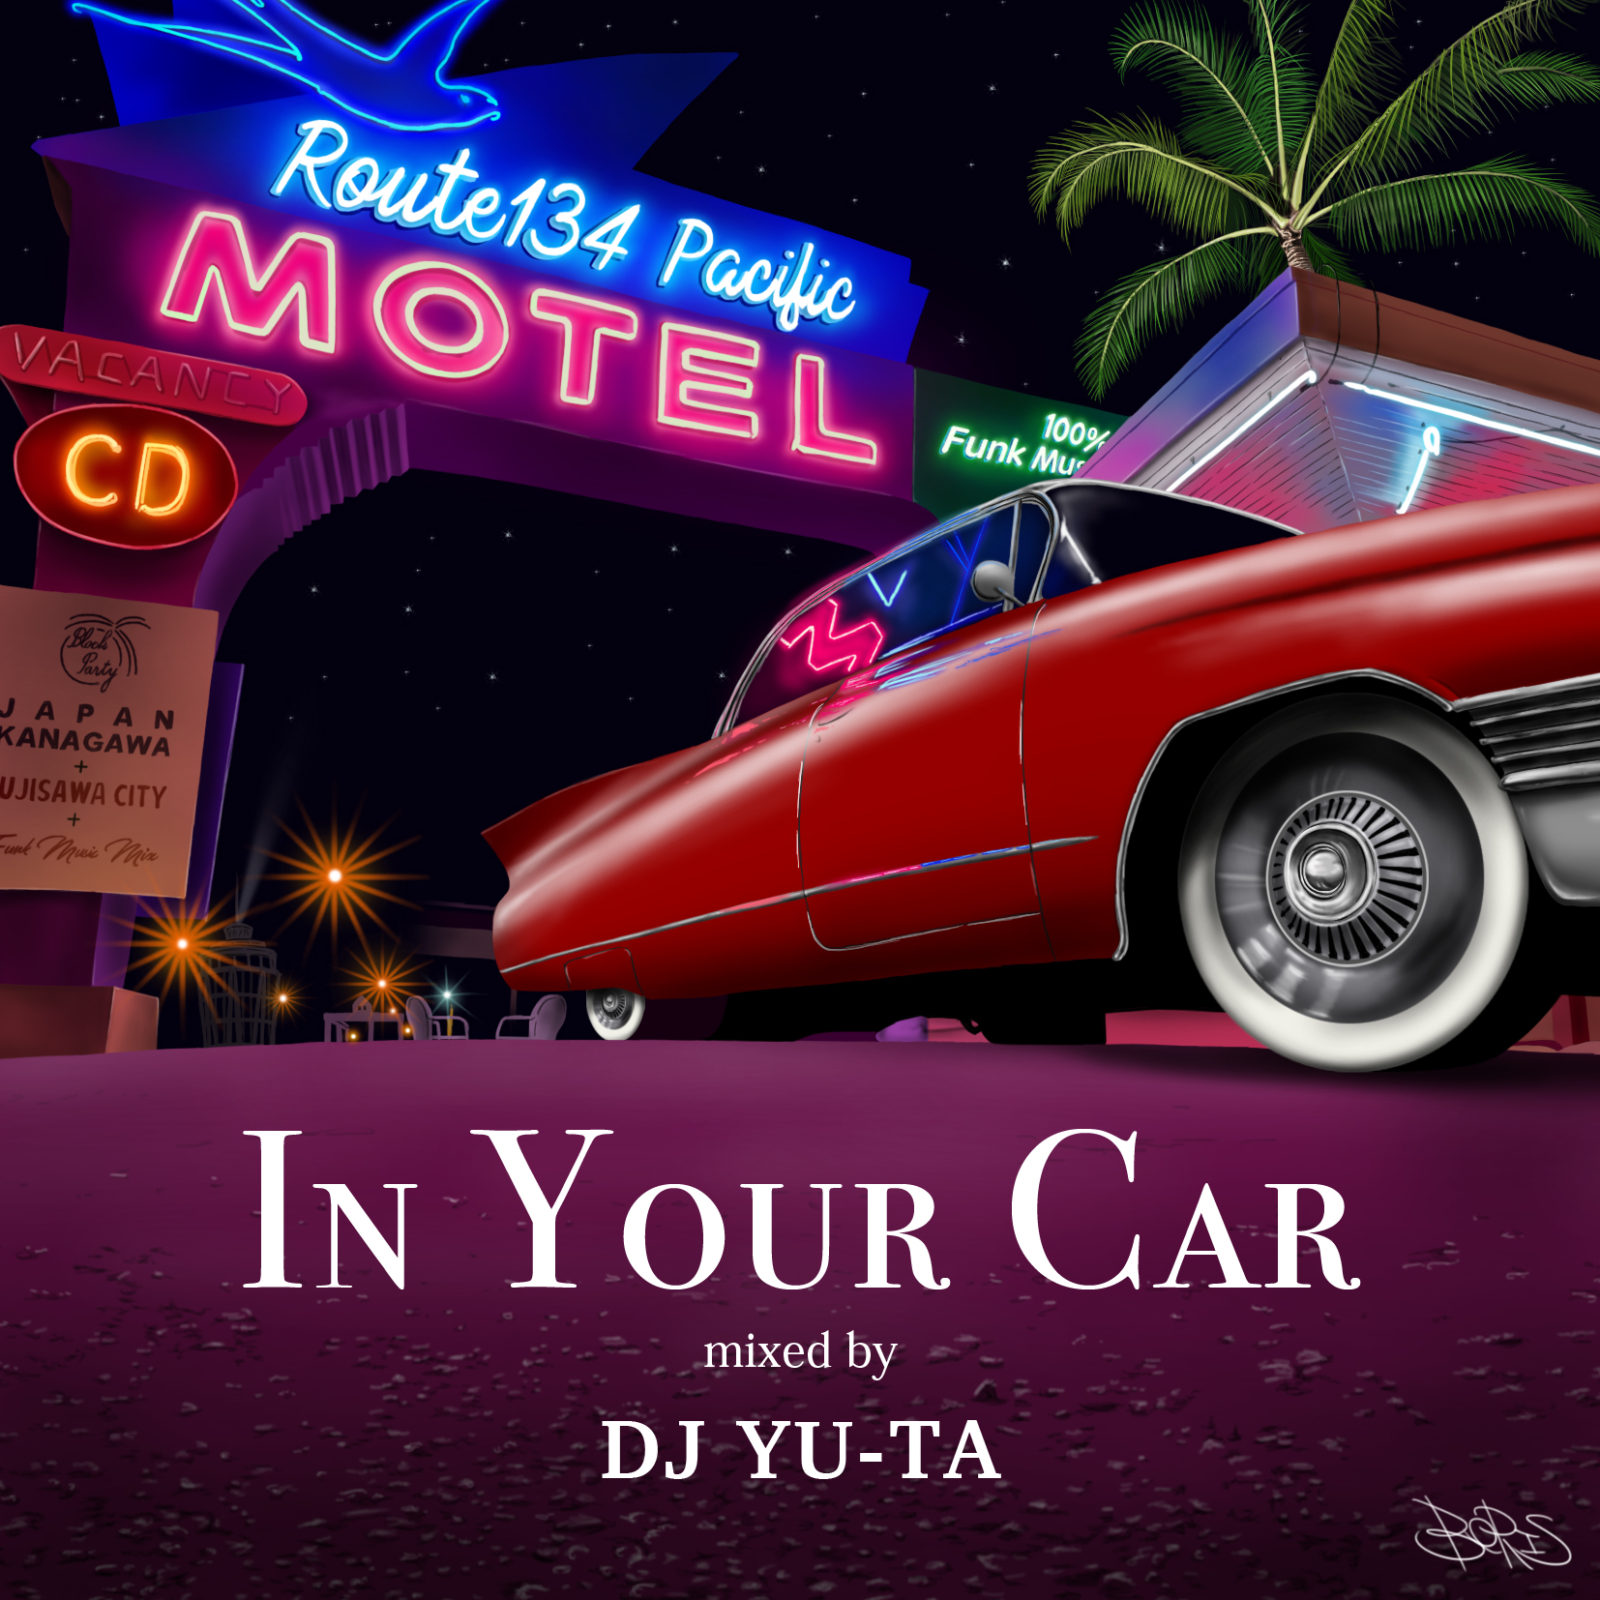 「In Your Car」mixed by DJ YU-TA 1,080円(税込)